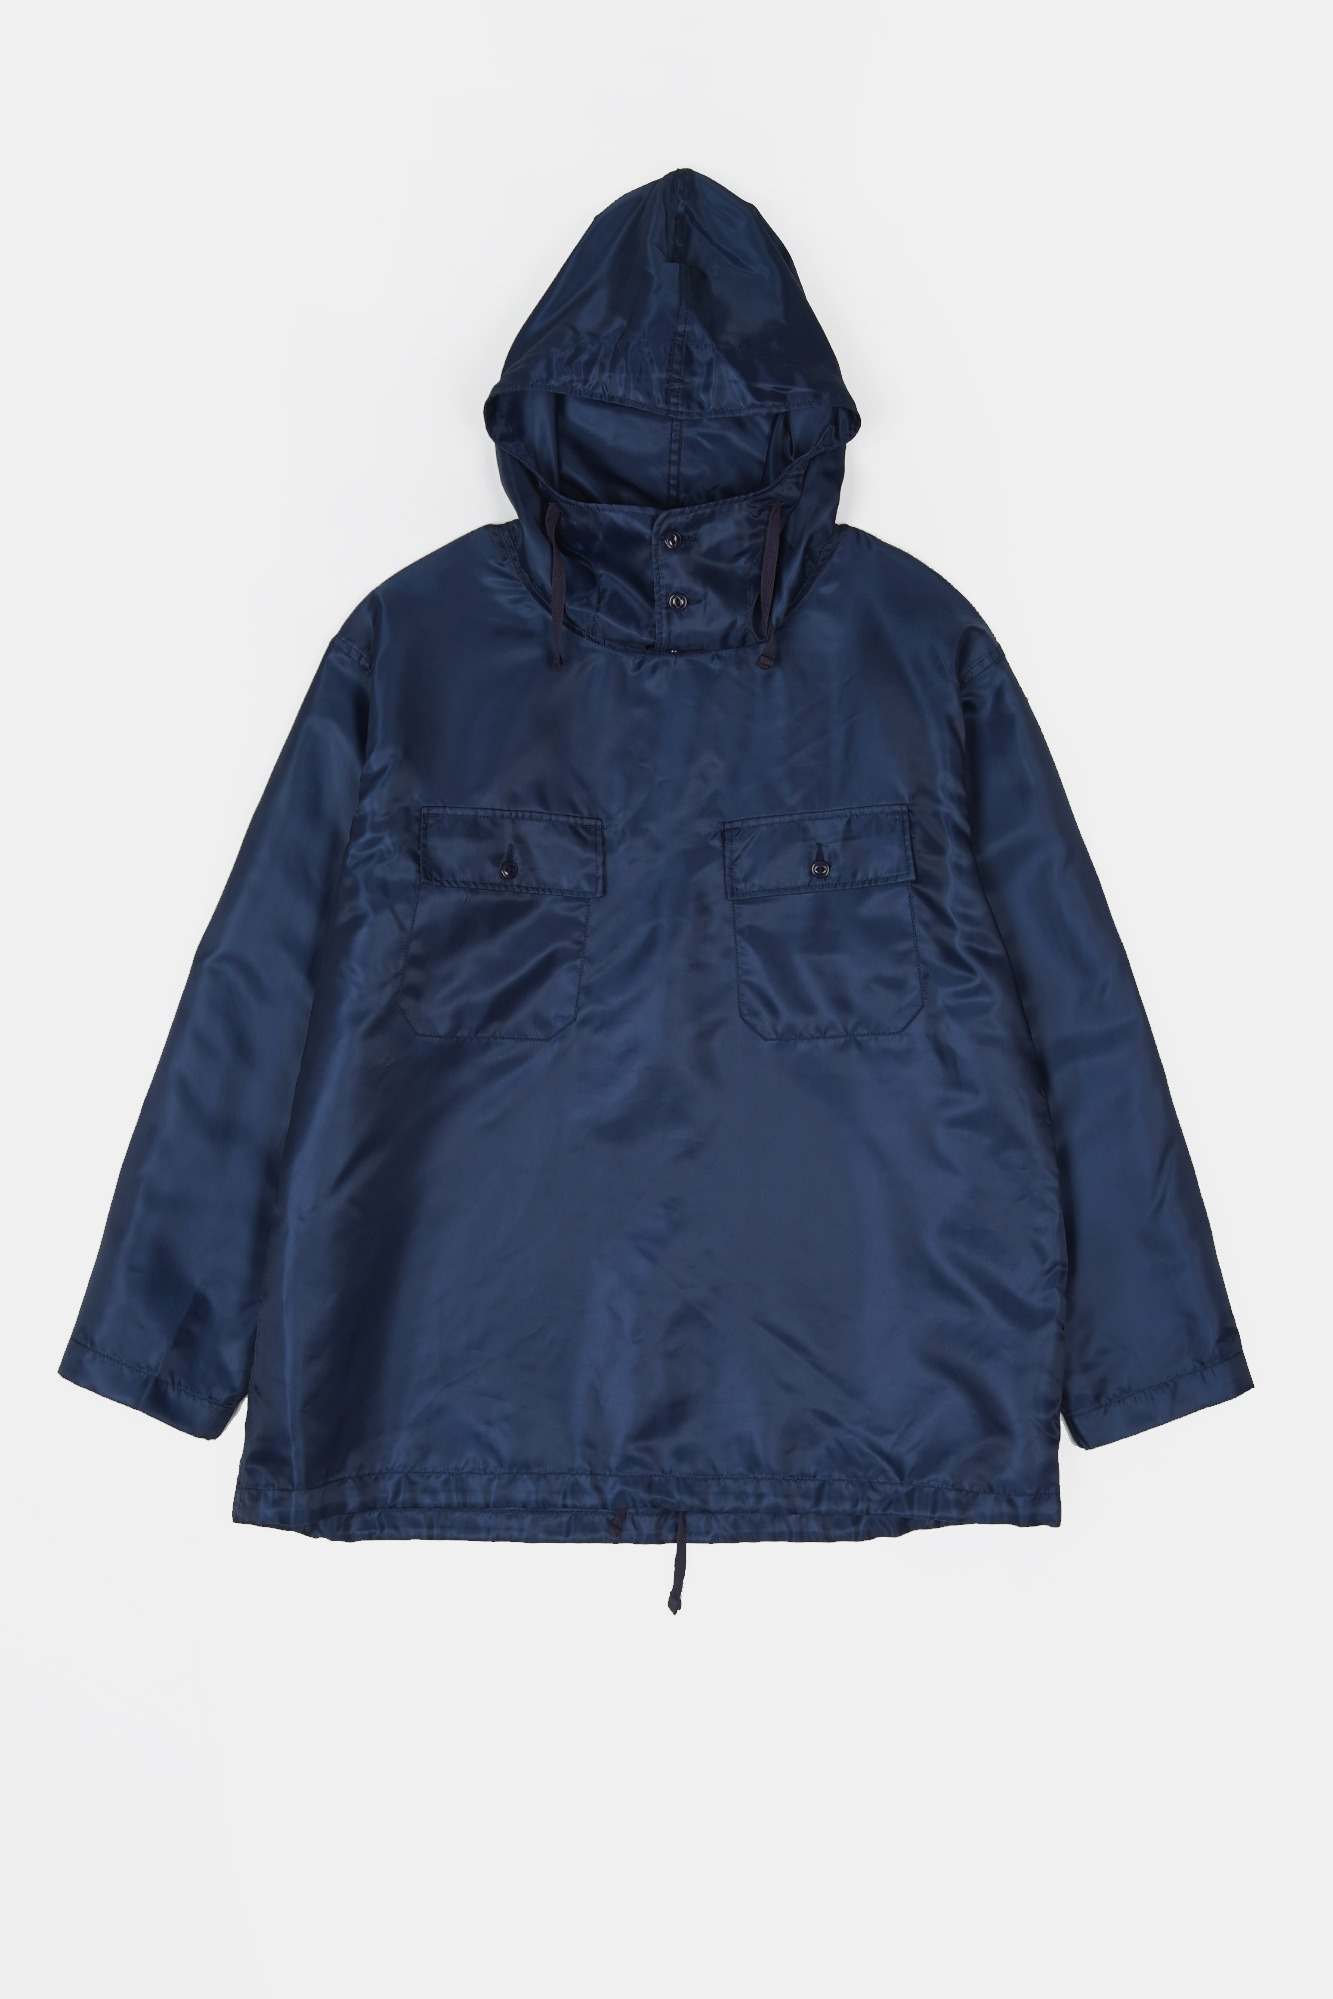 "ENGINEERED GARMENTS Cagoule Shirt ""Navy Polyester Pilot Twill"""